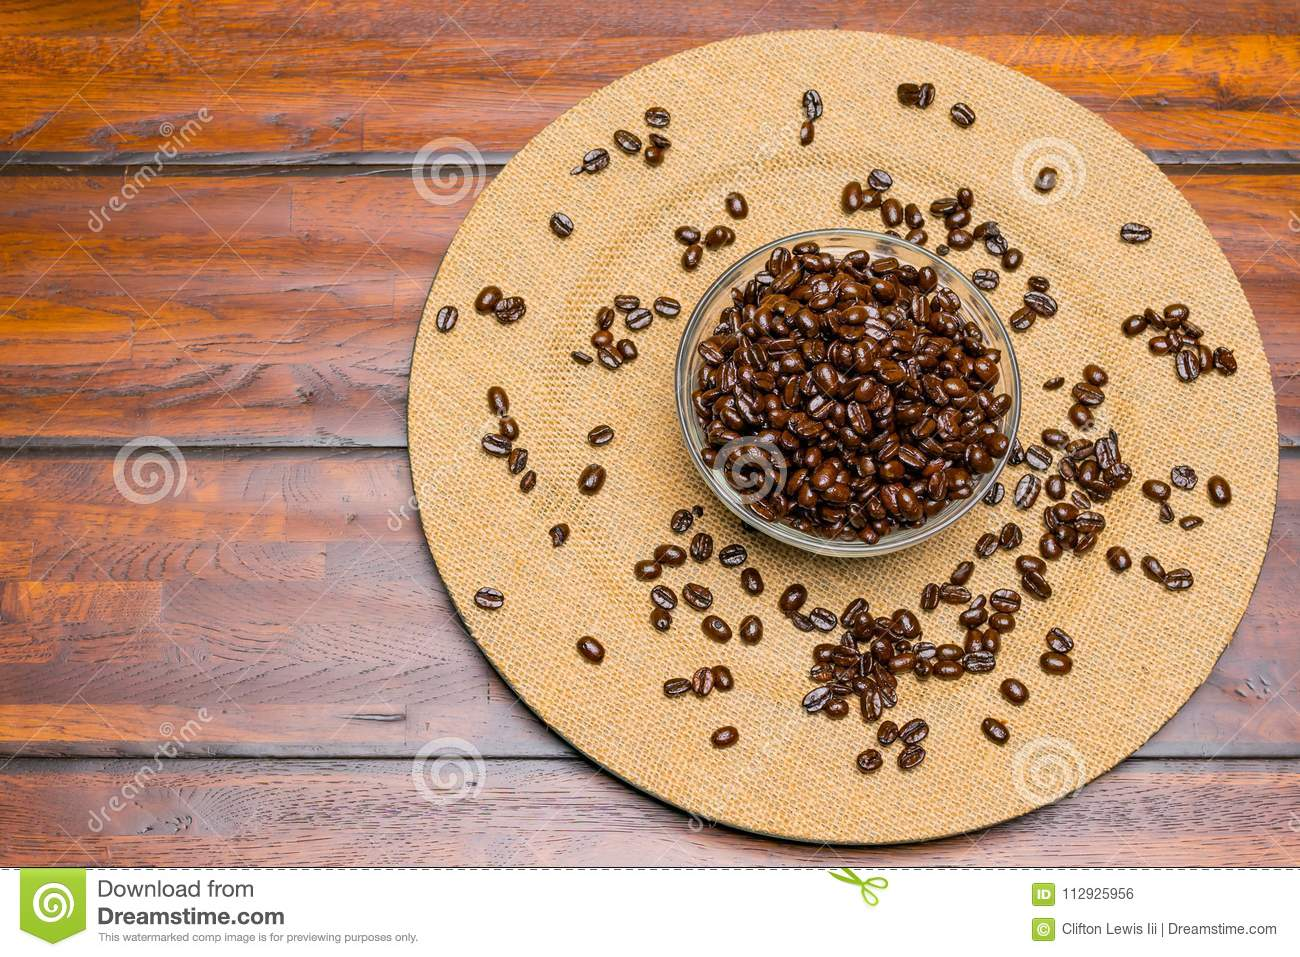 A plate of whole Coffee Beans on a wooden background.